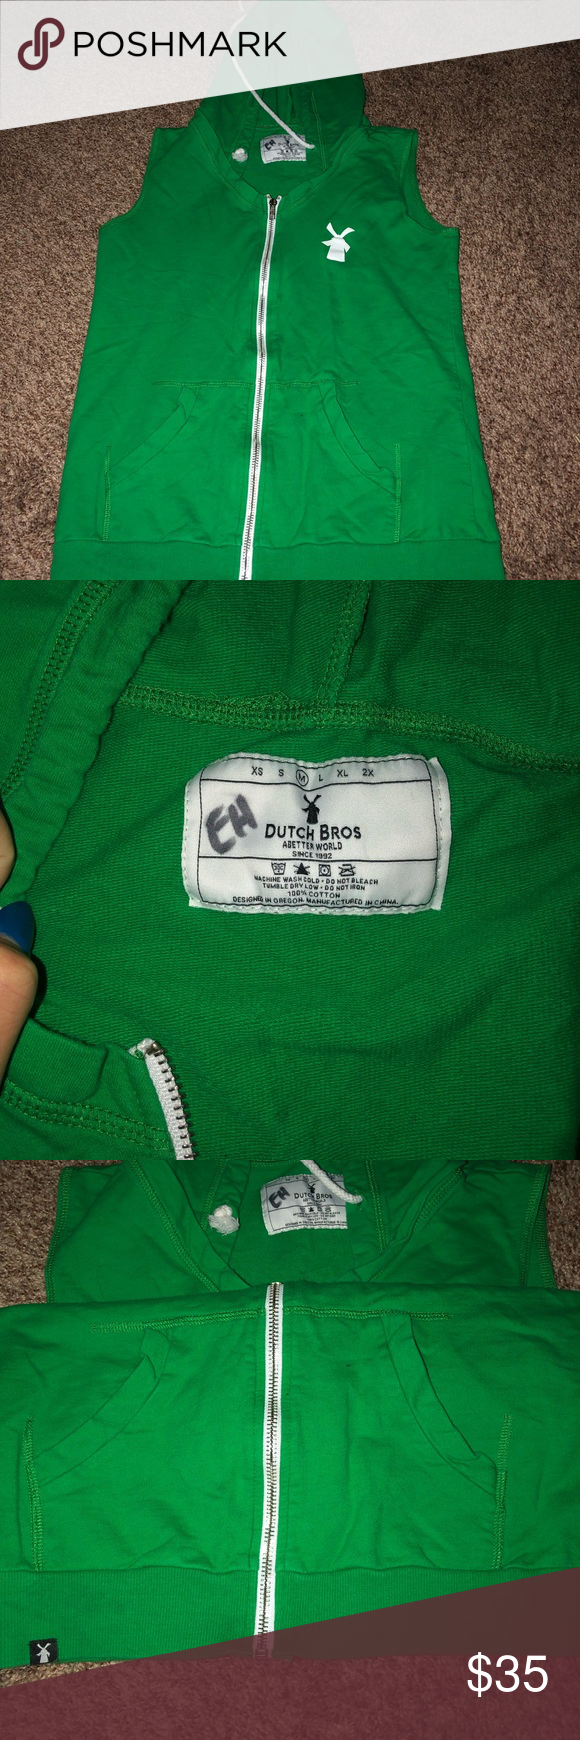 Green zip up Dutch Bros vest Medium green zip up sleeveless hoodie. Does have sharpie initials in it but other than that great condition only worn a handful of times. dutch bros Tops Tank Tops #dutchbros Green zip up Dutch Bros vest Medium green zip up sleeveless hoodie. Does have sharpie initials in it but other than that great condition only worn a handful of times. dutch bros Tops Tank Tops #dutchbros